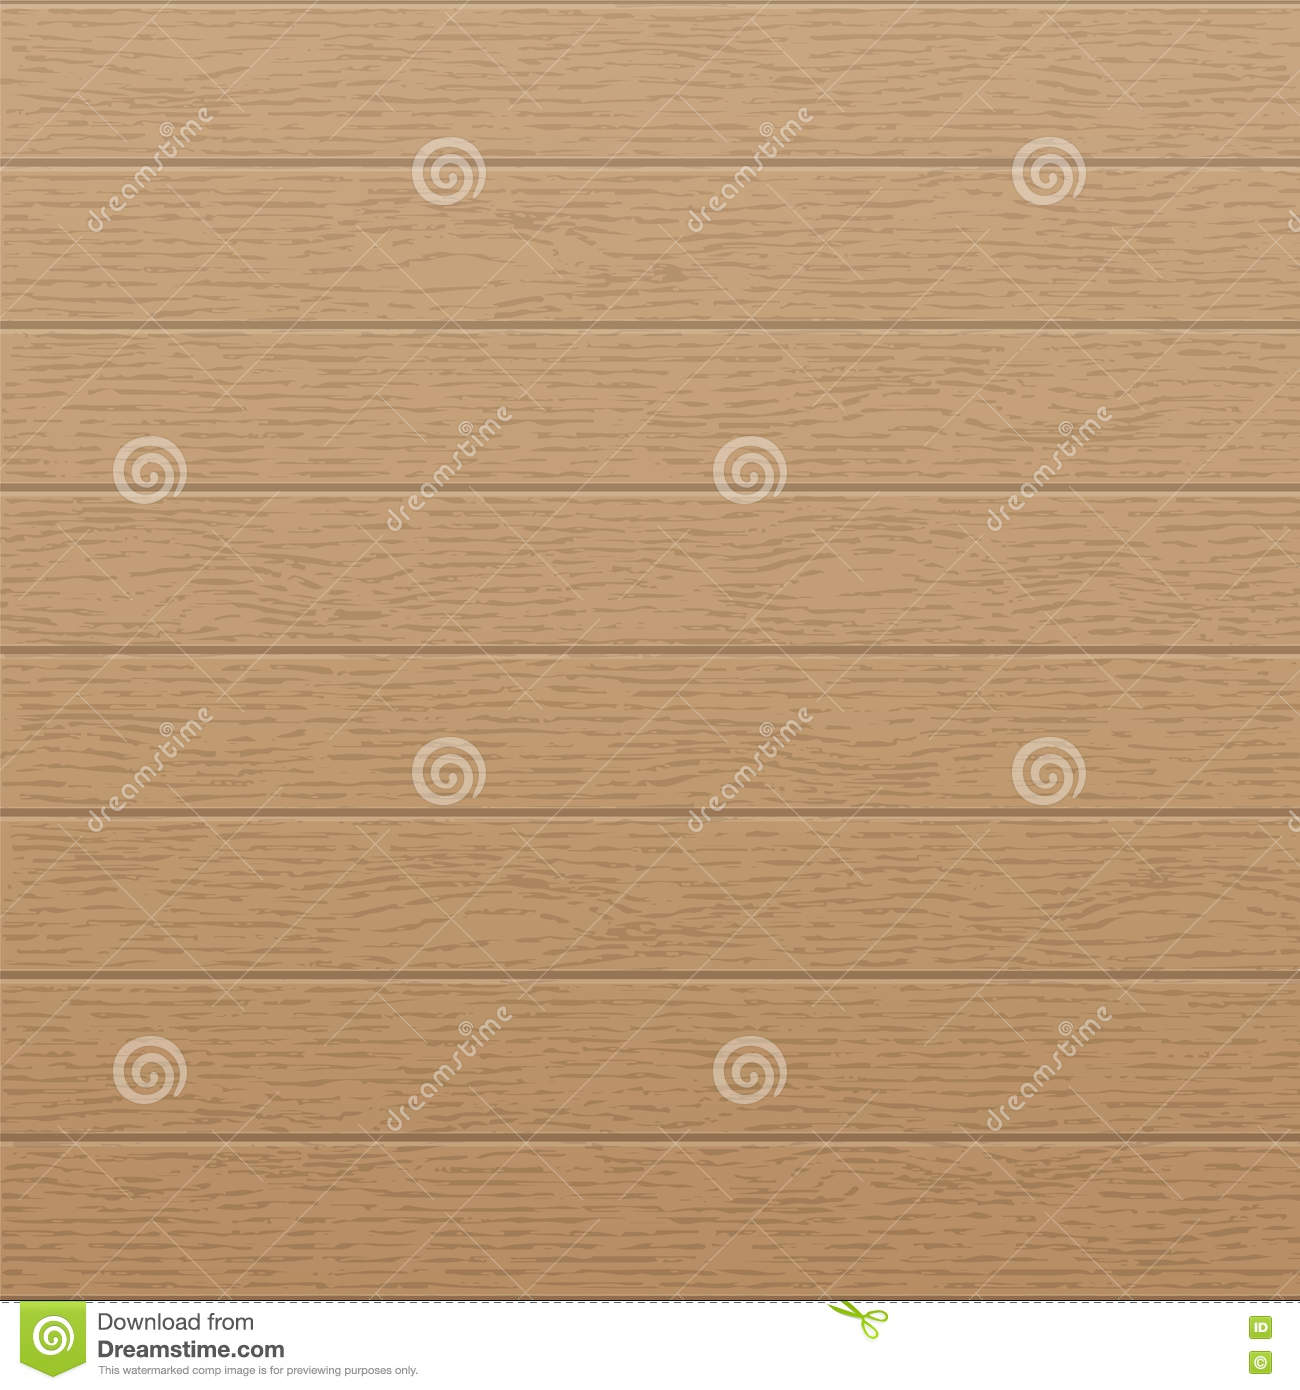 Wall panel hardwood flooring miami by ribadao lumber amp flooring - Wood Texture Template With Horizontal Stripes Rustic Old Panels Grunge Vintage Floor Wooden Vector Background